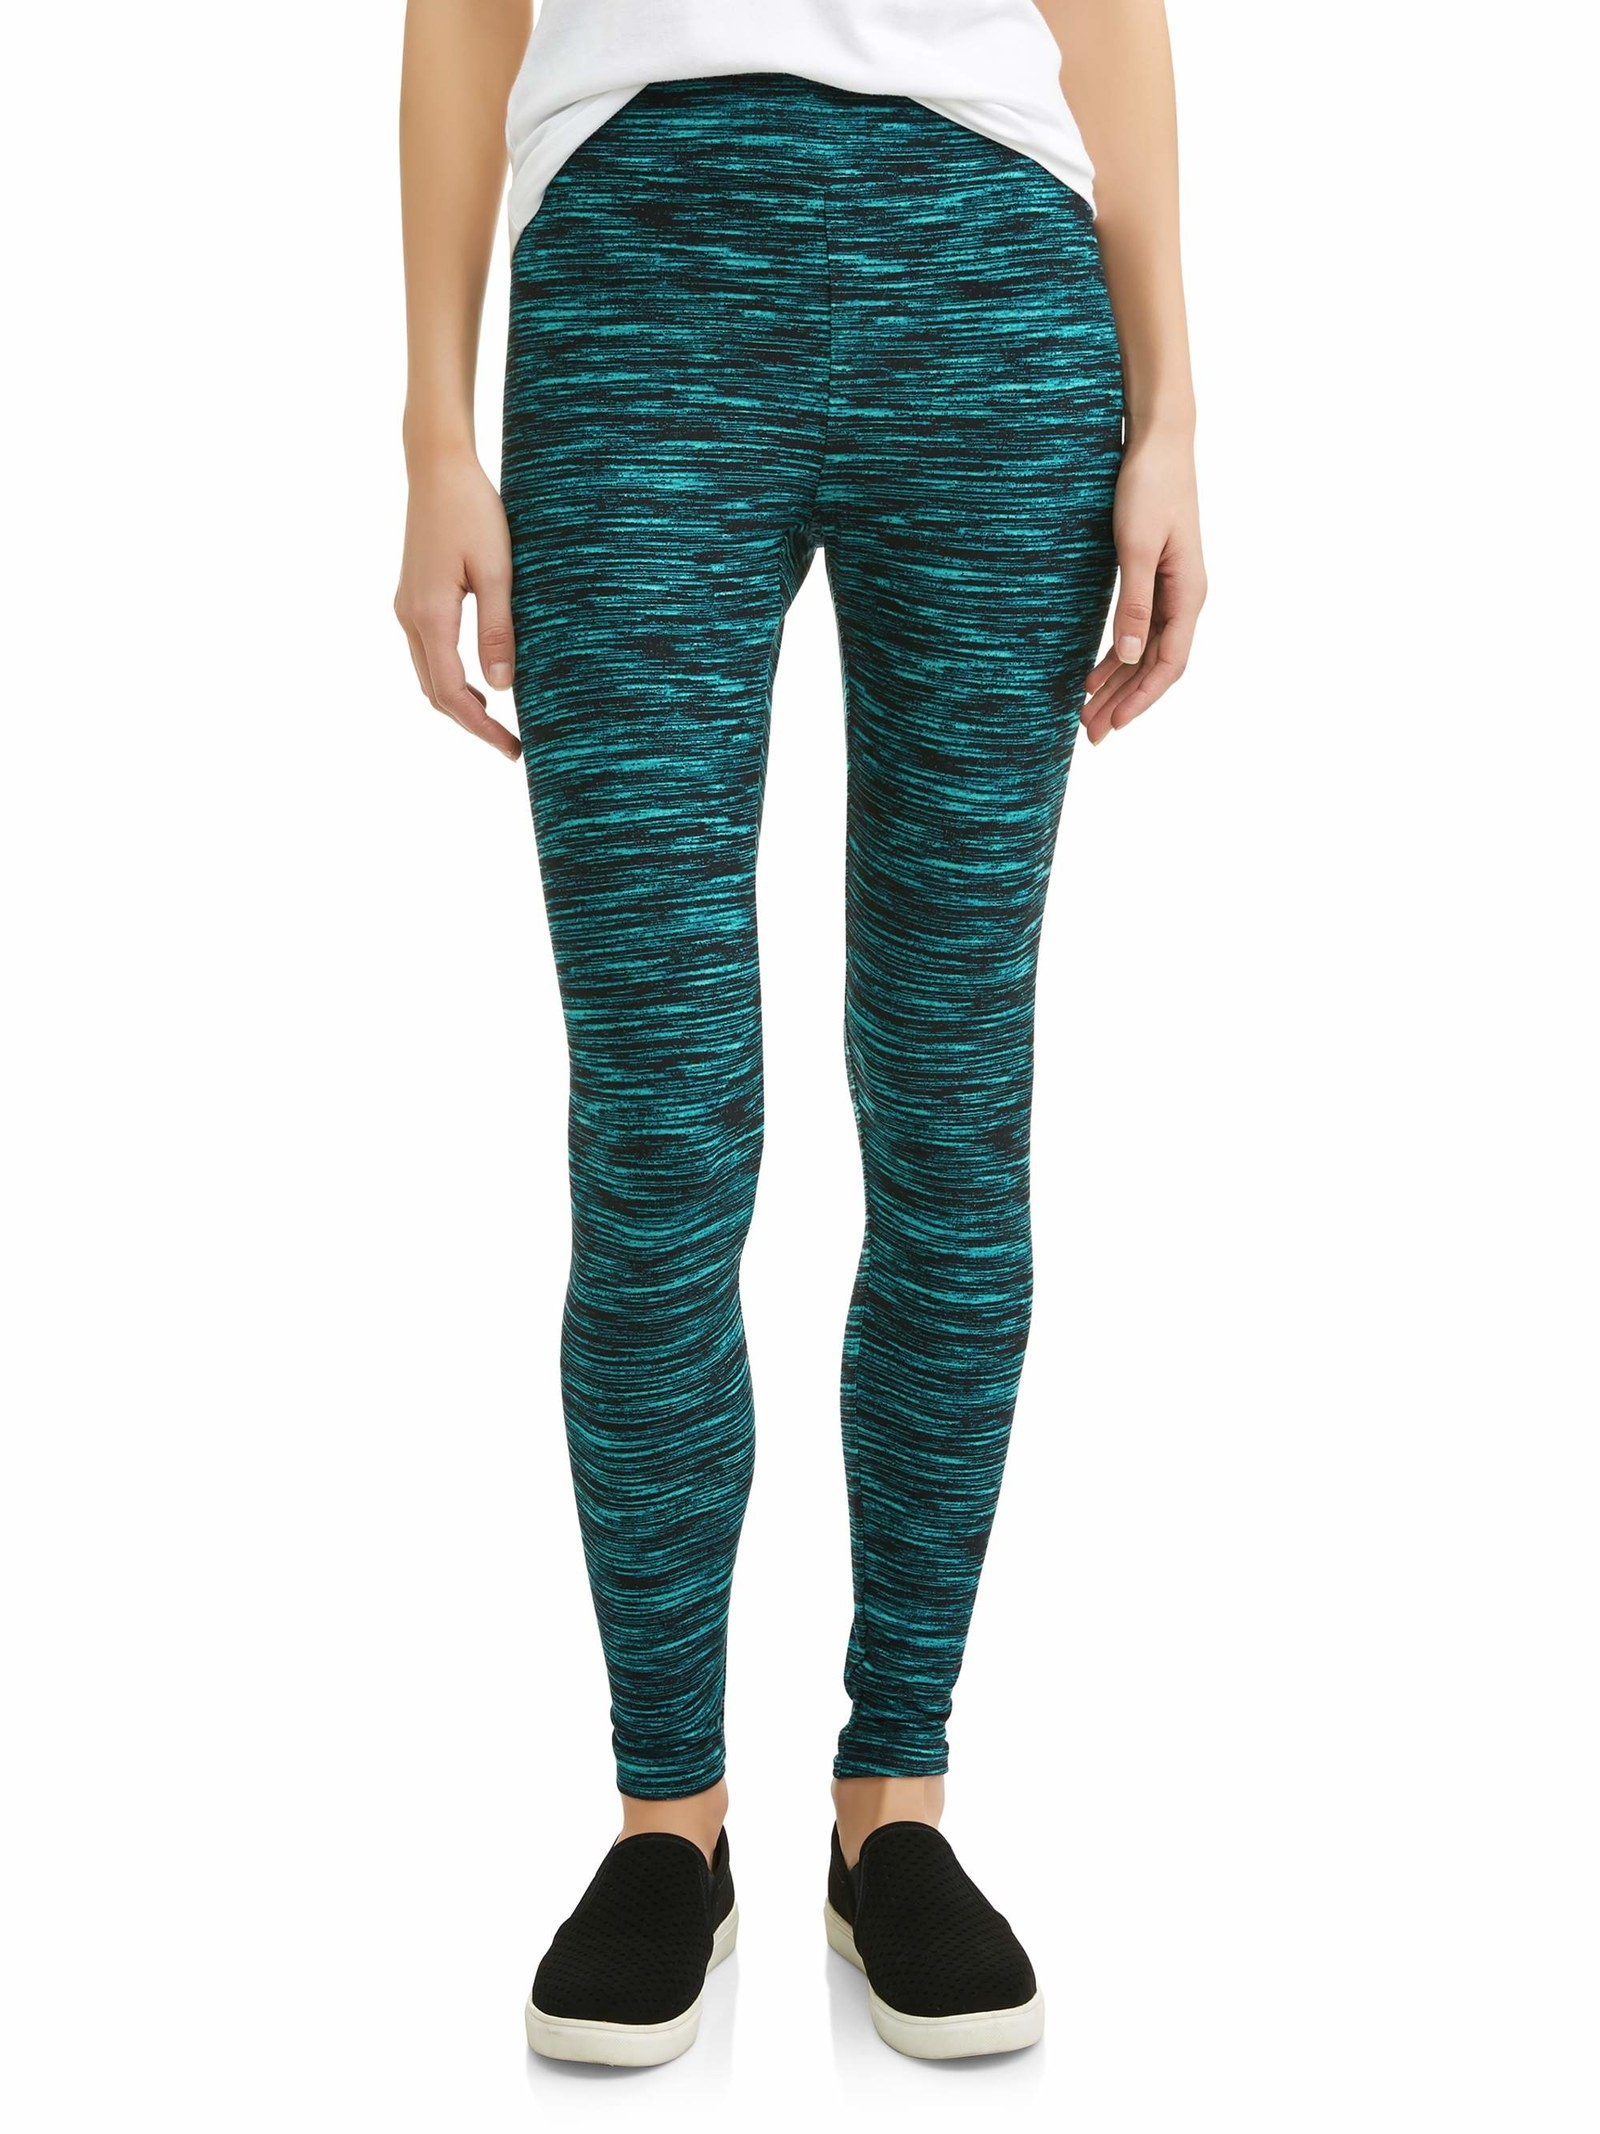 0404c8a326f357 Fun printed leggings you might just ditch all of your pants for, so you  probably want to stock up on all of the colors. Walmart